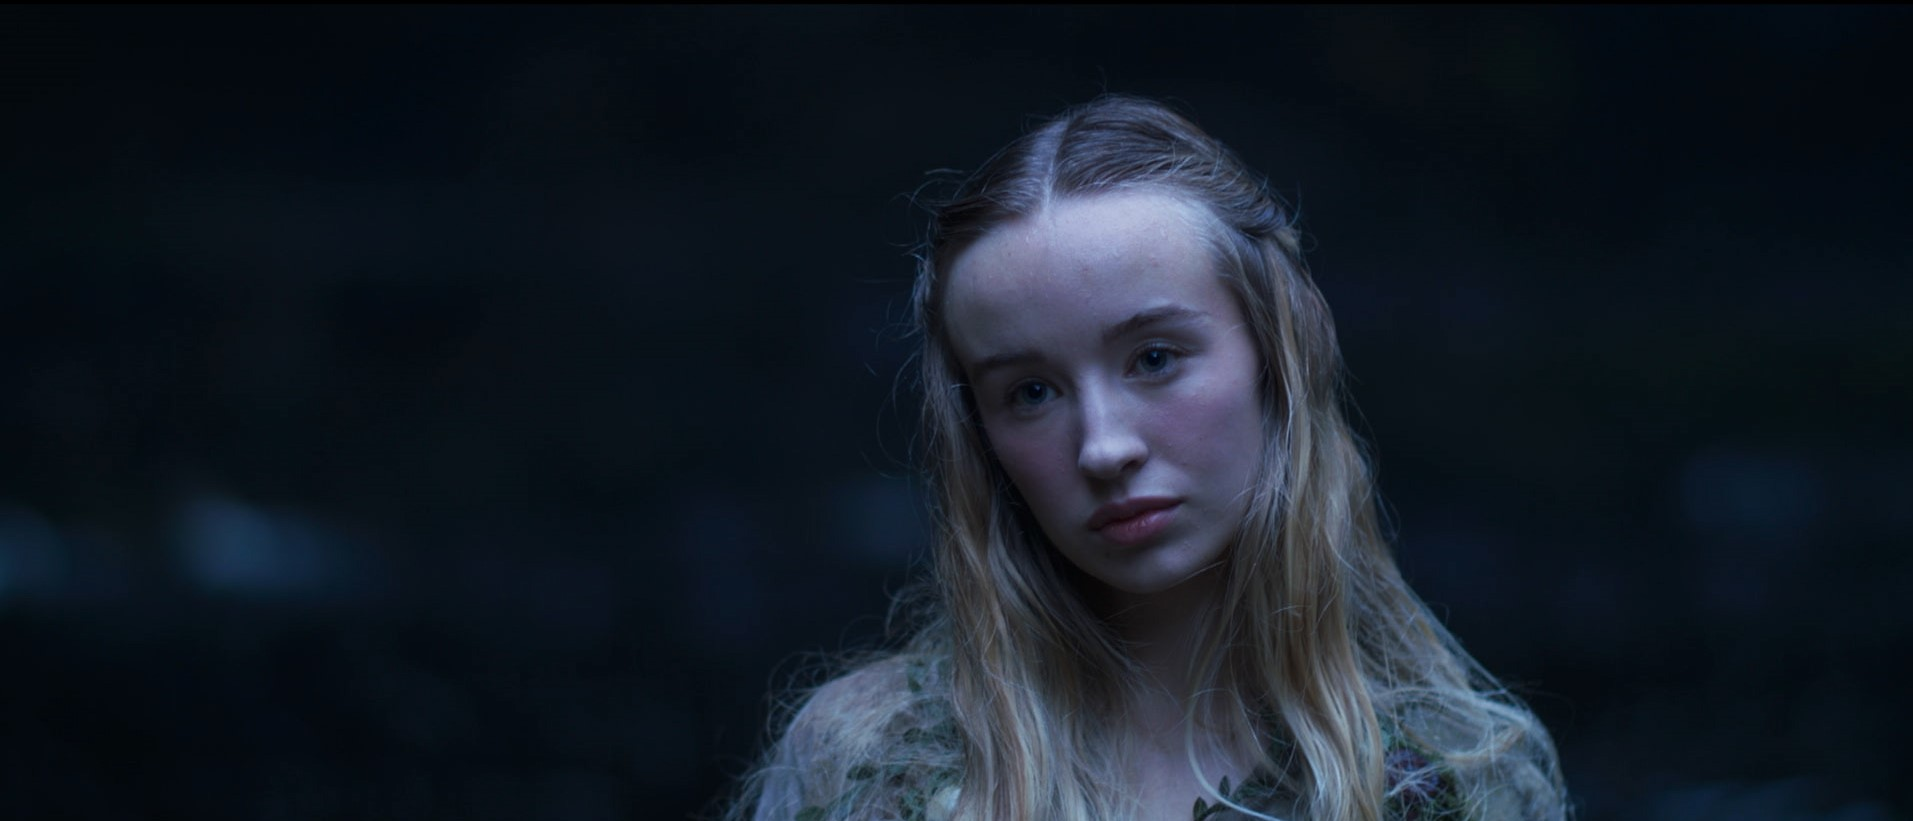 Arthur & Merlin: Knights of Camelot - Emily Haigh as Lady of The Lake